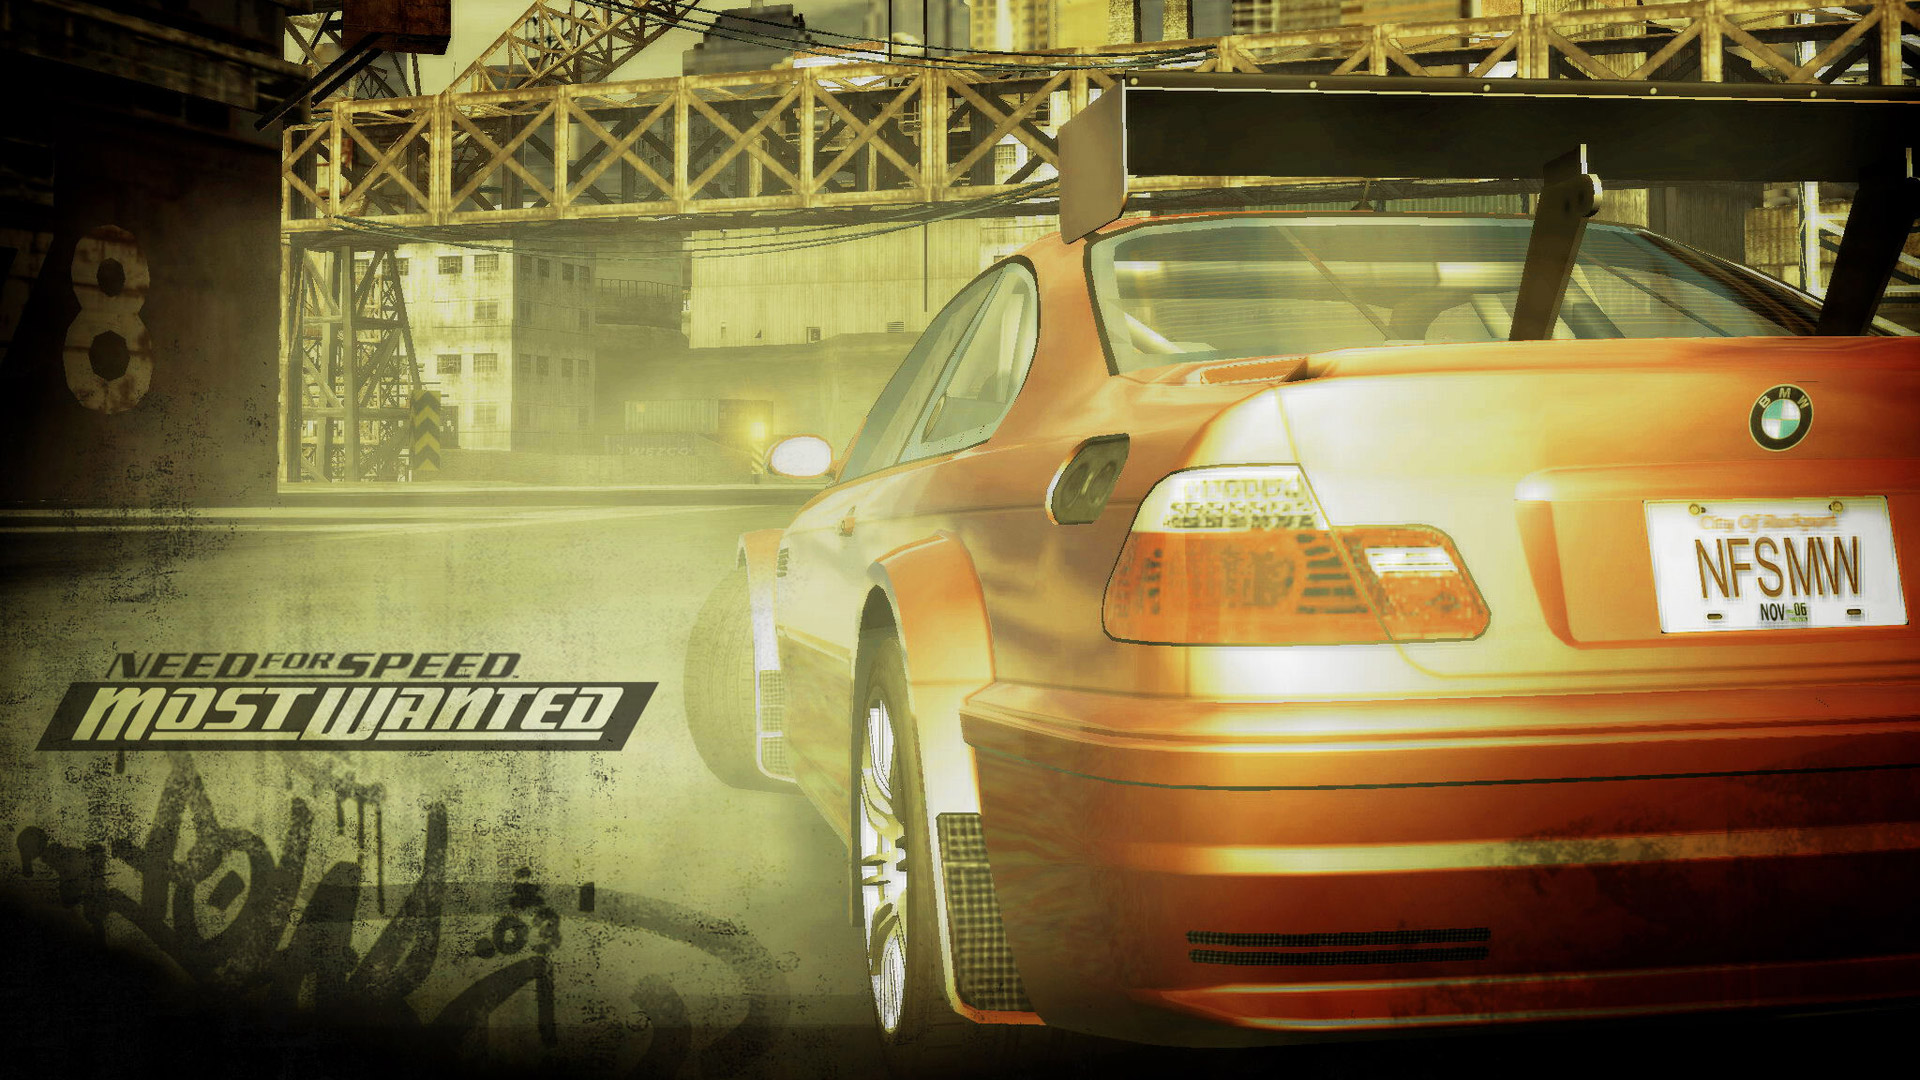 Need for Speed: Most Wanted Wallpaper in 1920x1080